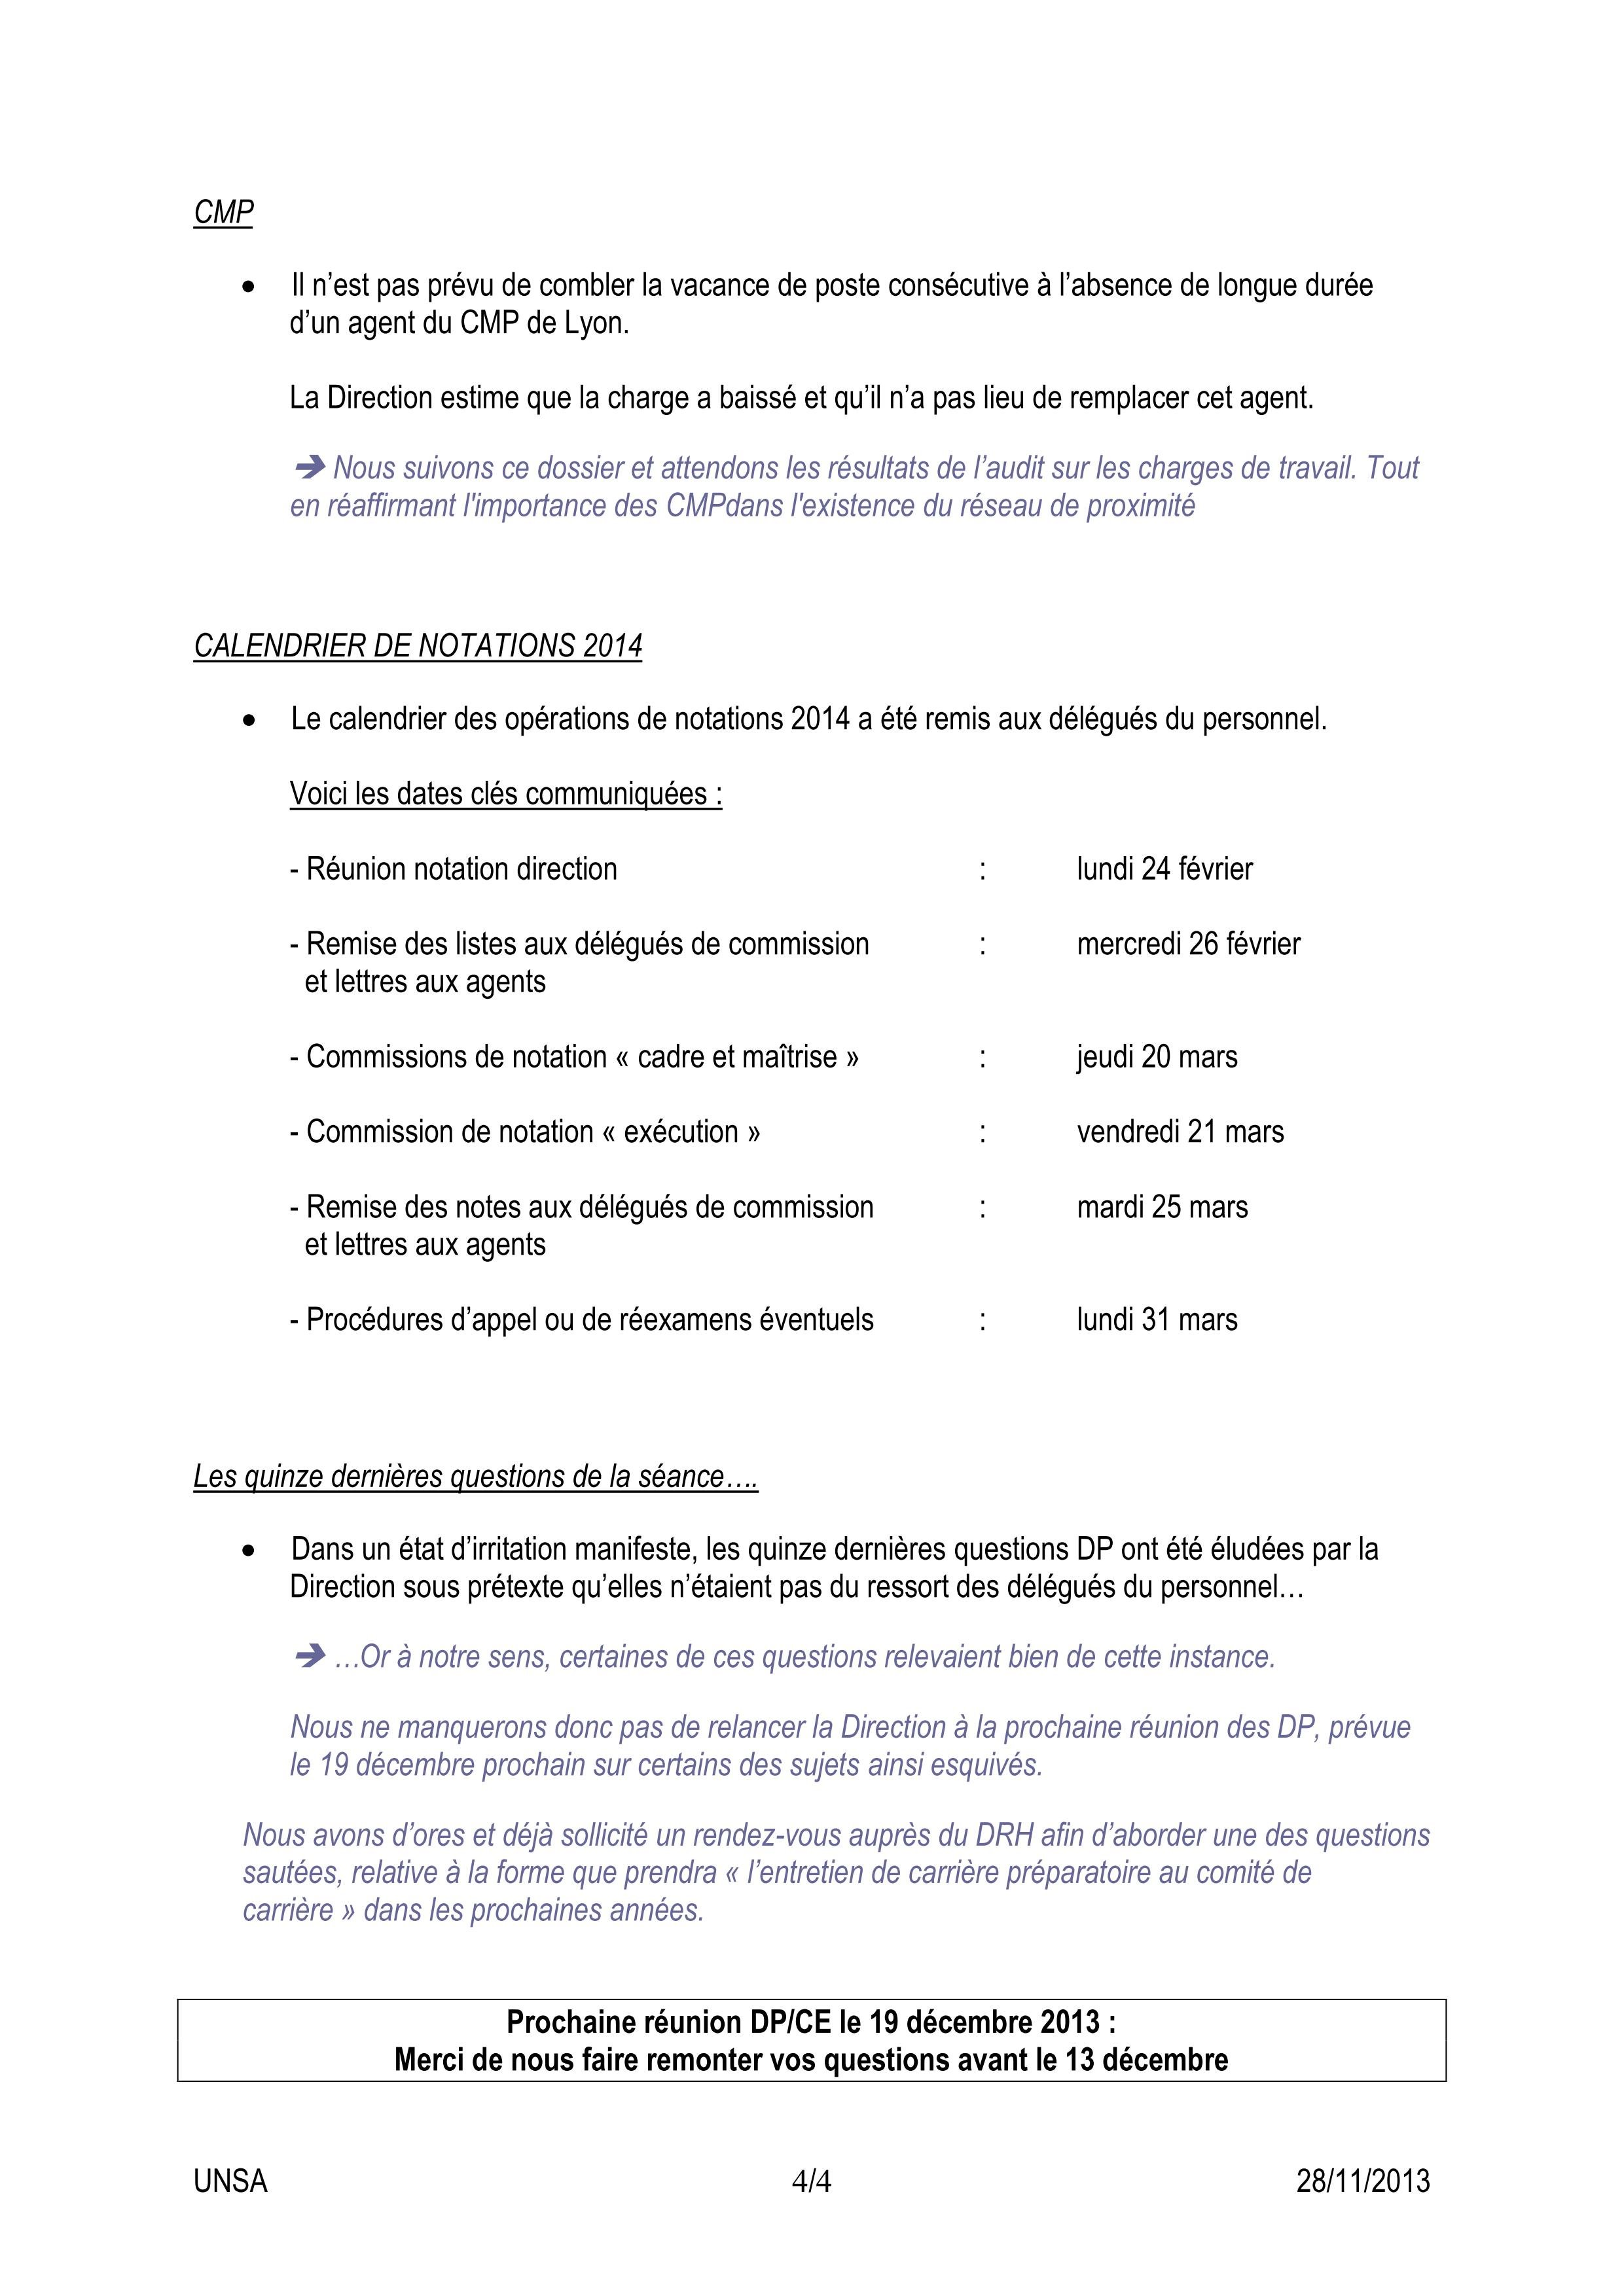 Modele lettre candidature election chsct for Election chsct